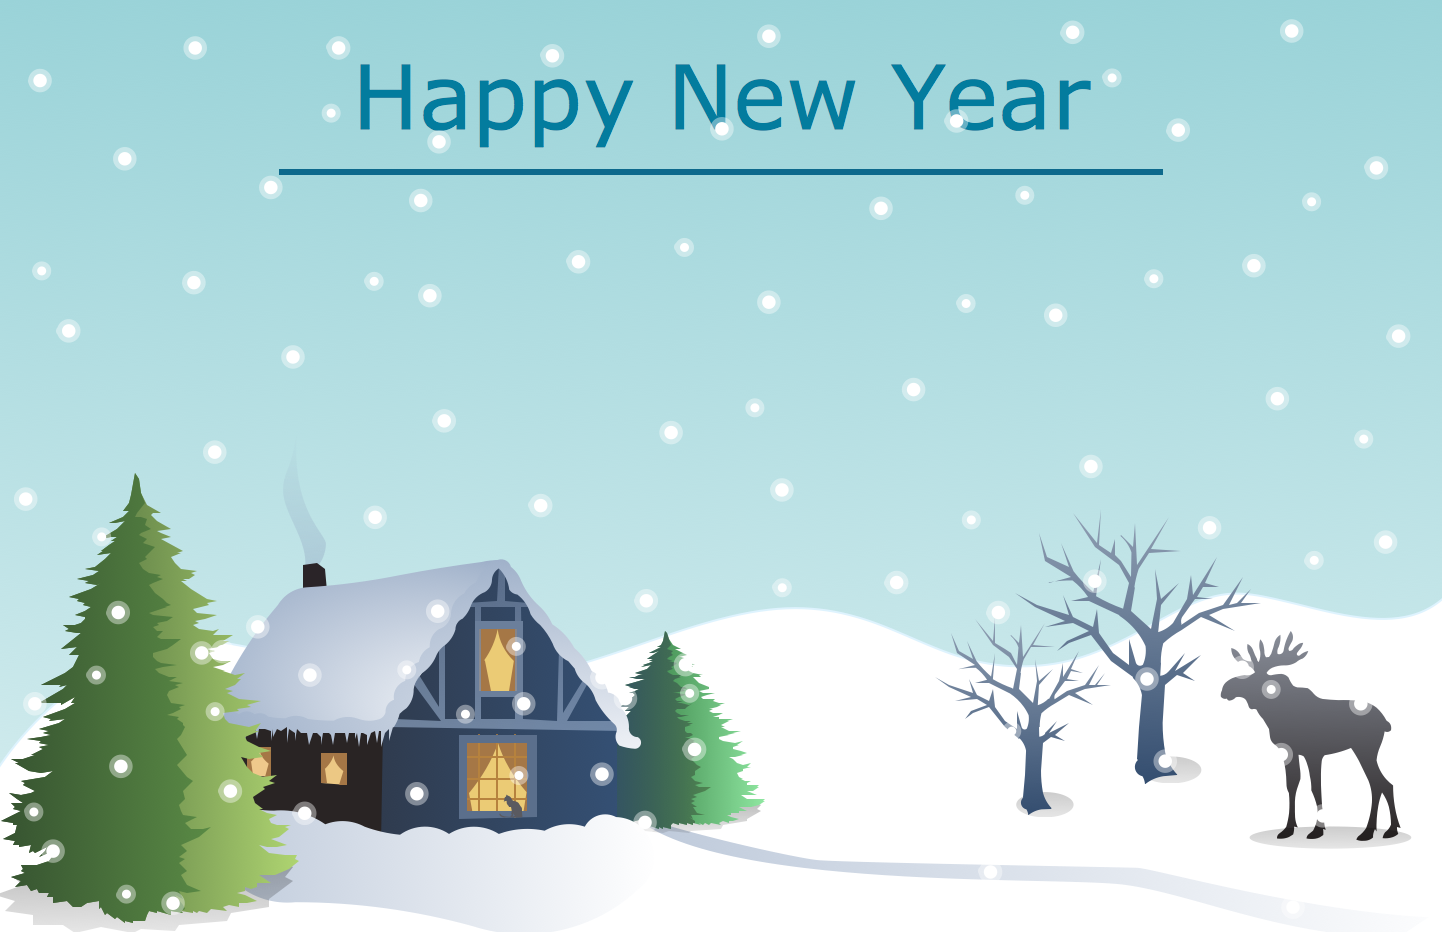 New Year Card Template - Christmas Winter Landscape